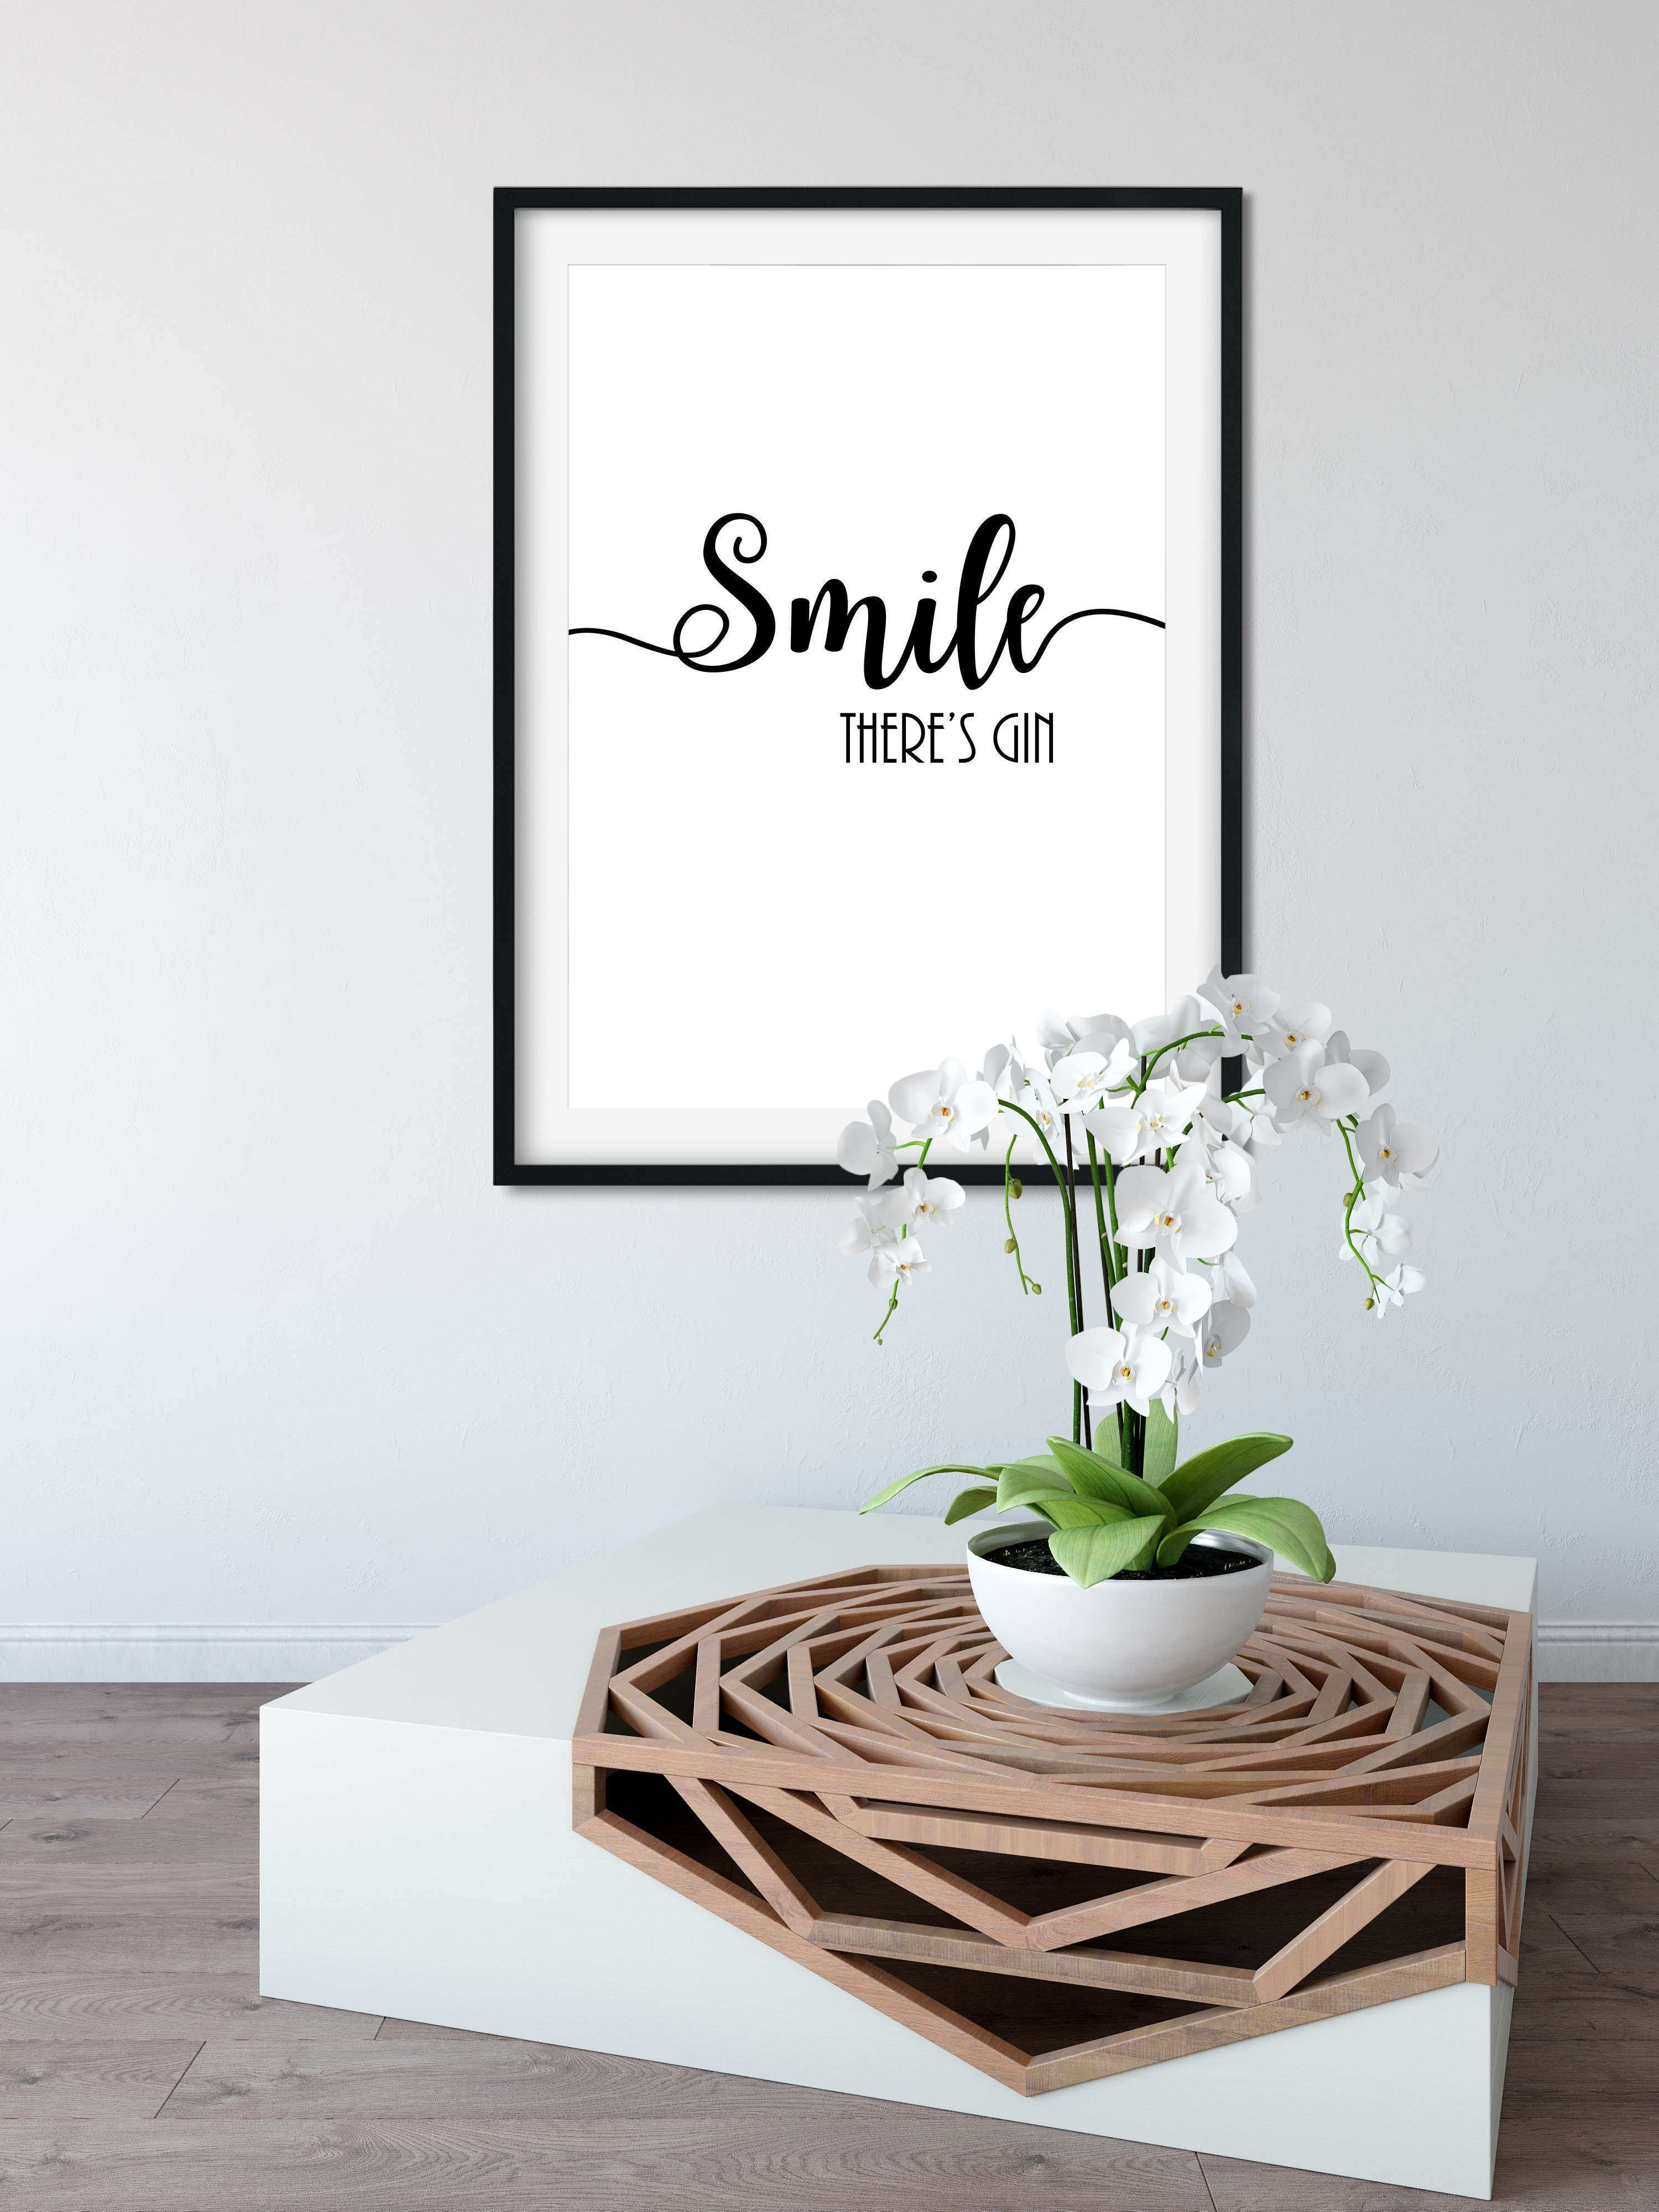 Smile Theres Gin Funny Poster Wall Print A4 A3 Size Great Gift